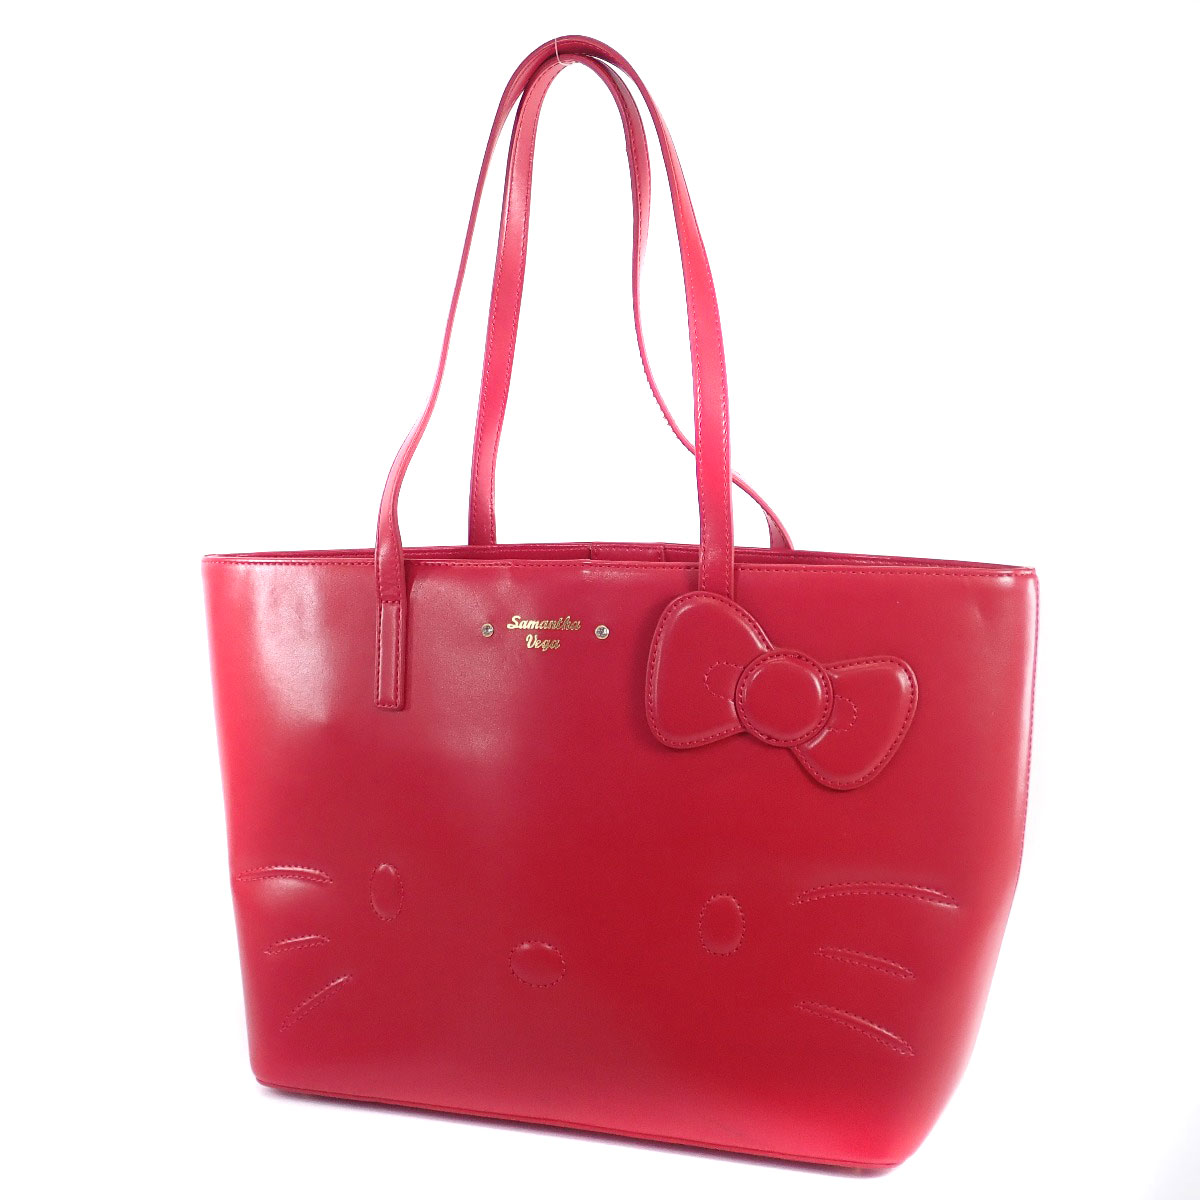 d0e67d14f Samantha Vega 【Samantha Vega】 Tote Bag Synthetic Leather Ladies ...